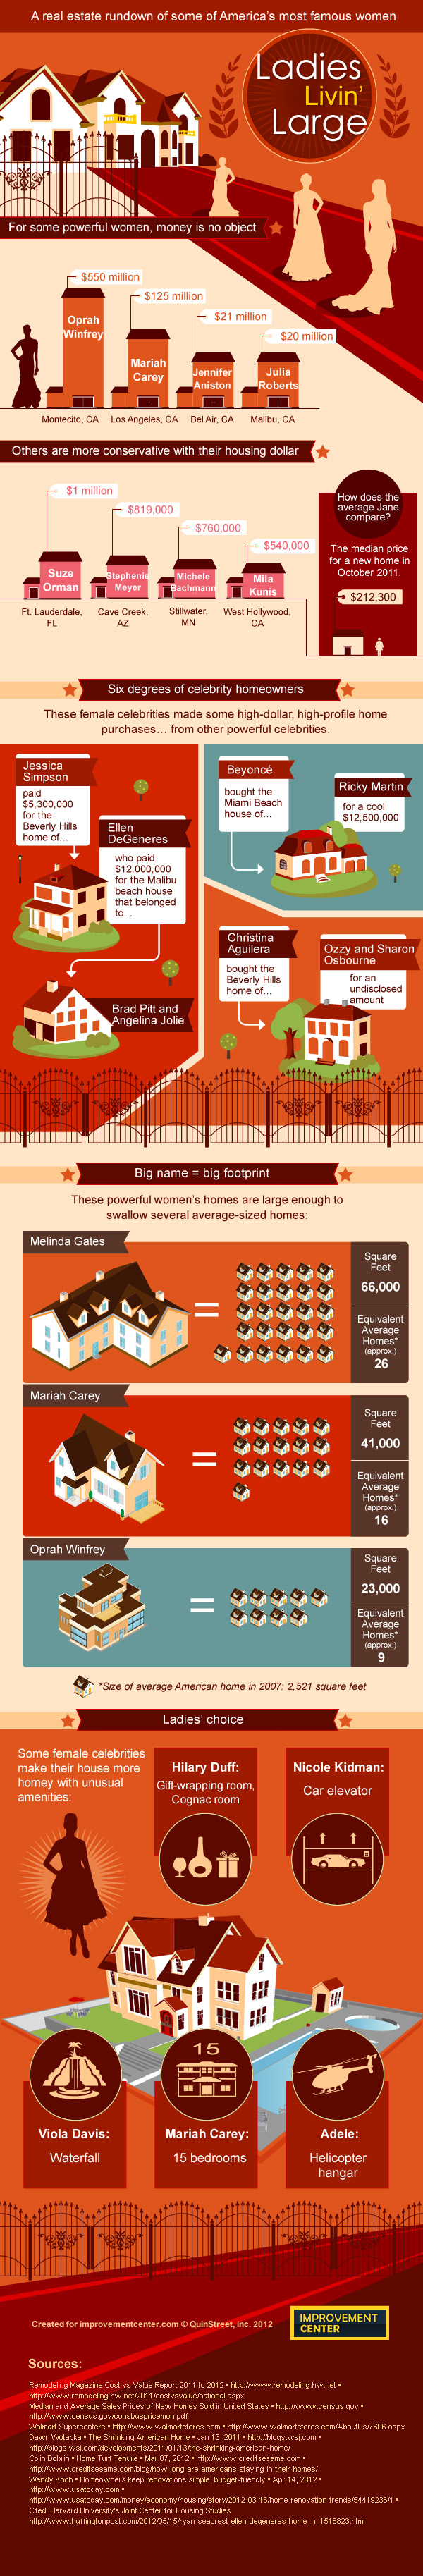 Female celebrities and their homes